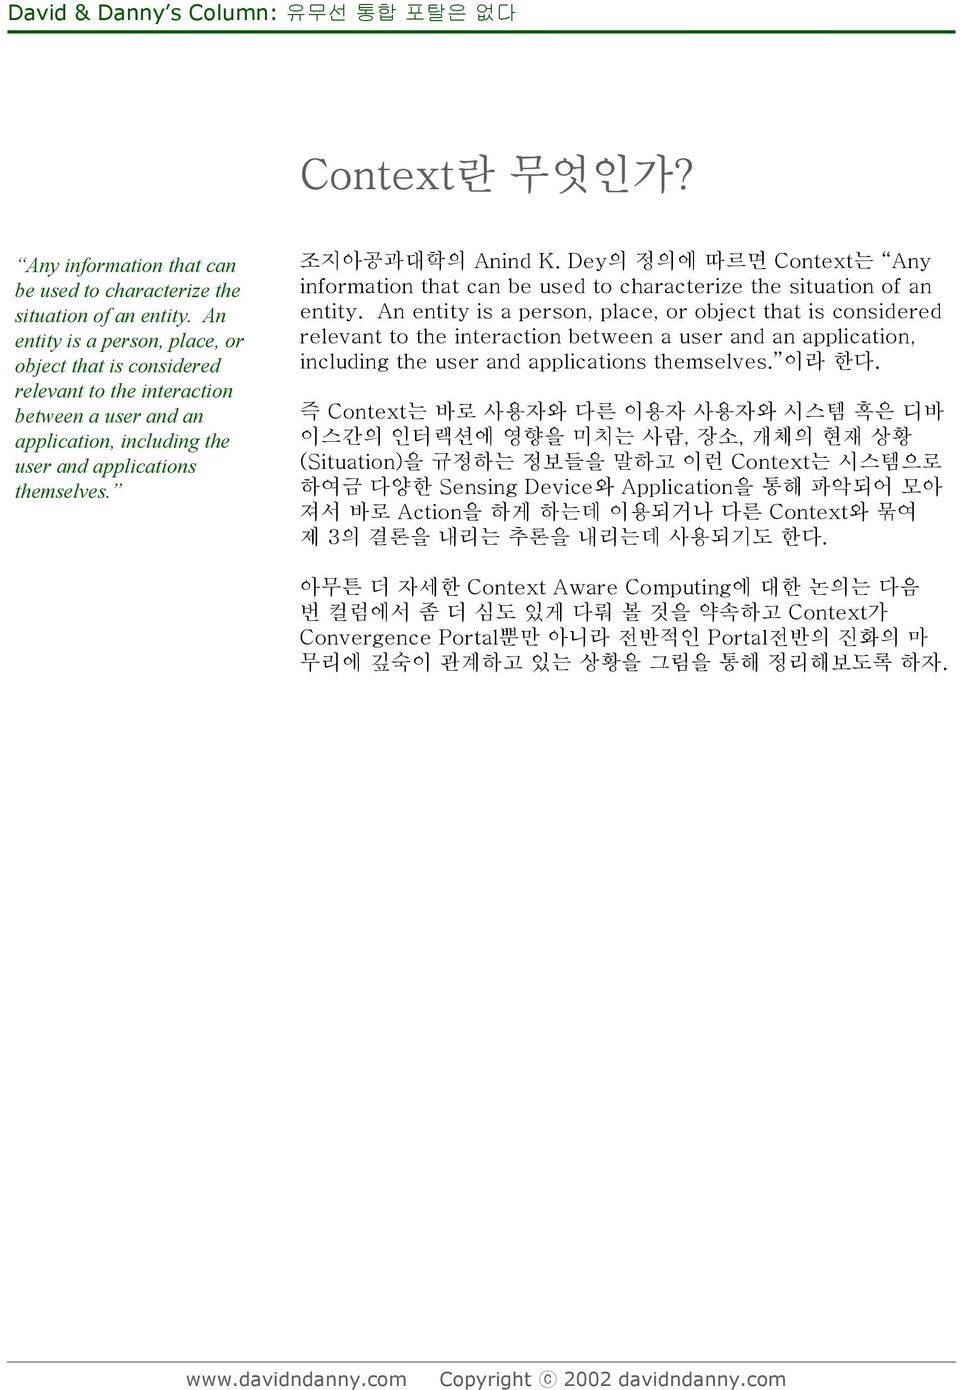 Dey의 정의에 따르면 Context는 Any information that can be used to characterize the situation of an entity.